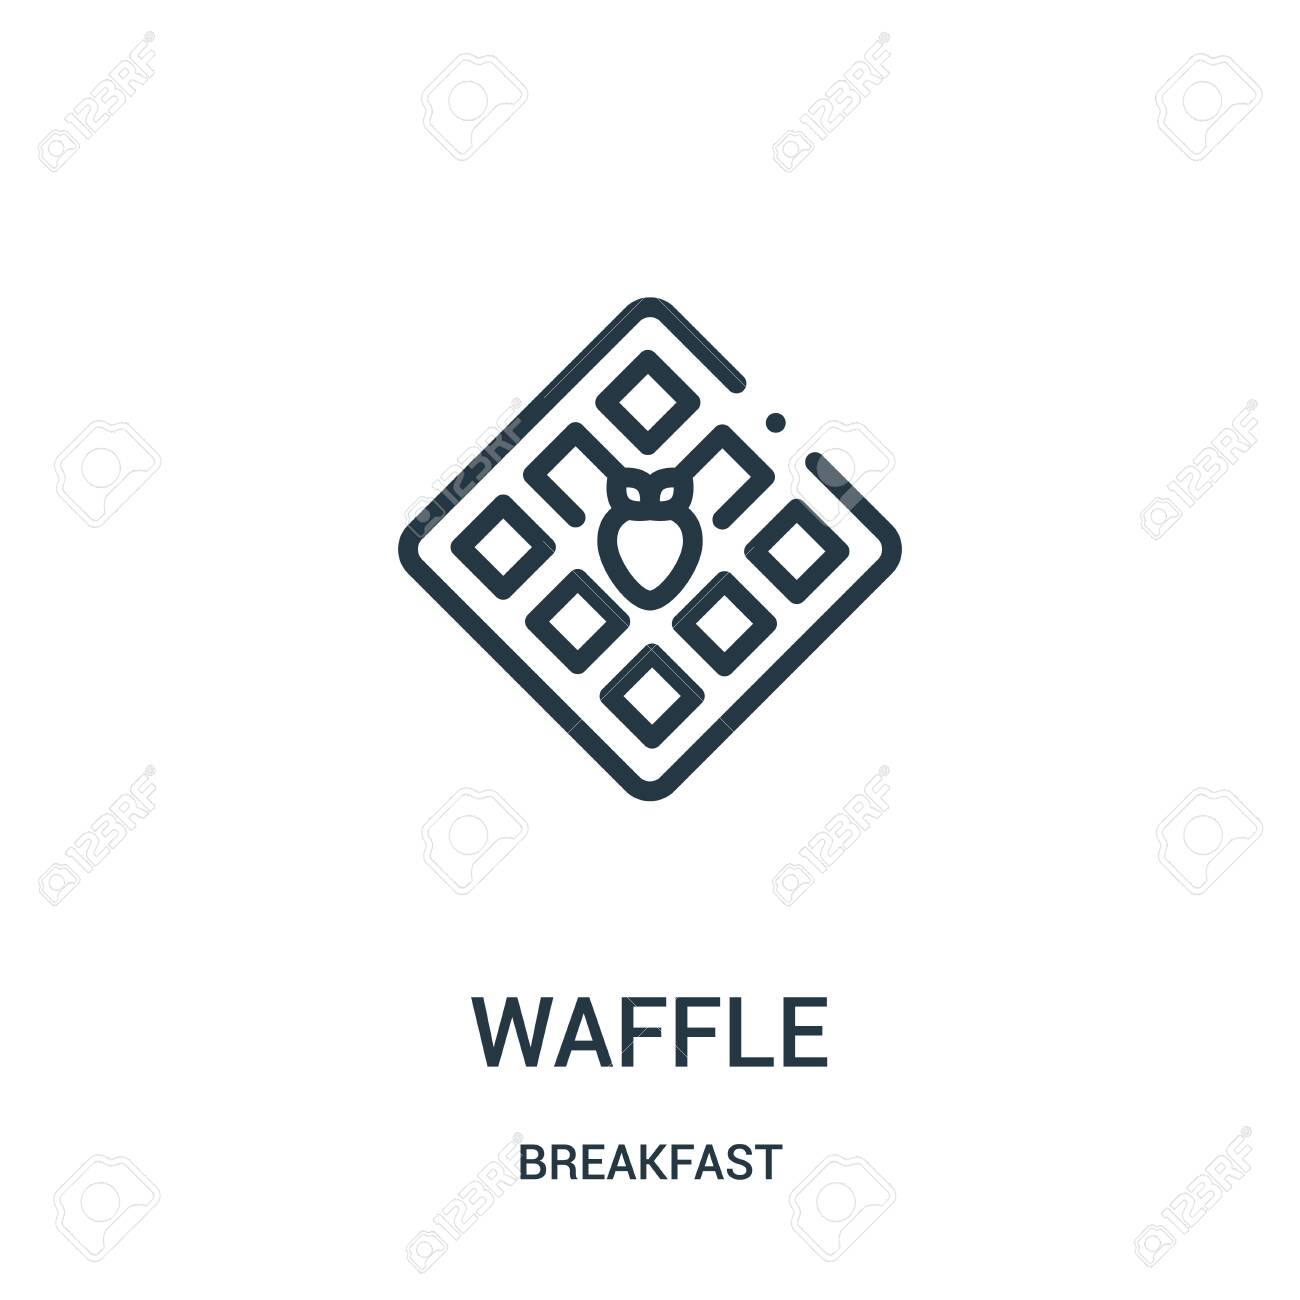 waffle icon vector from breakfast collection  Thin line waffle